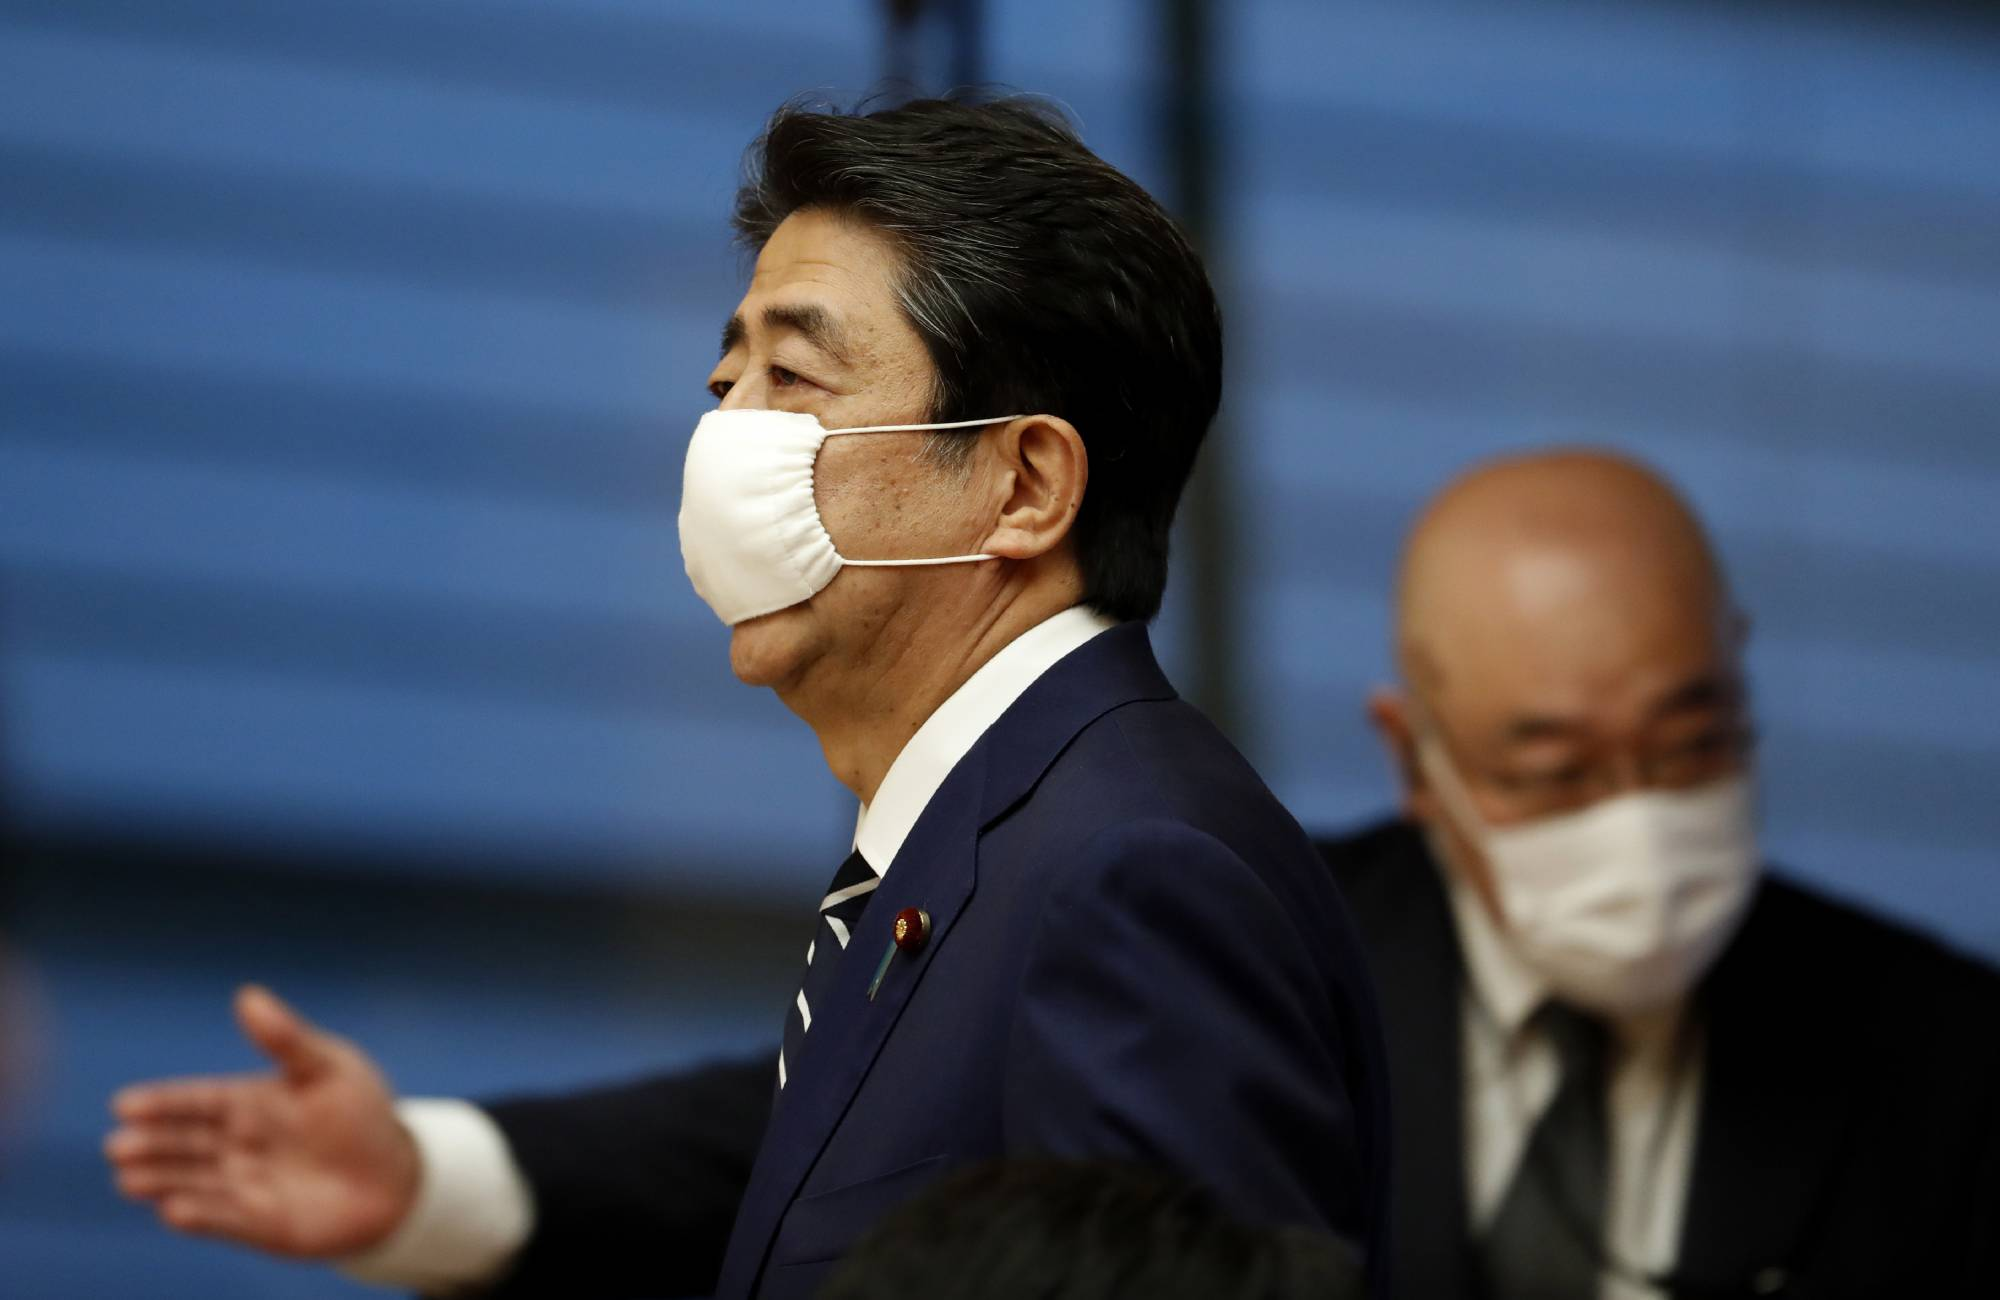 Prime Minister Shinzo Abe wears a protective mask ahead of a news conference in Tokyo on Monday. | POOL / VIA AP